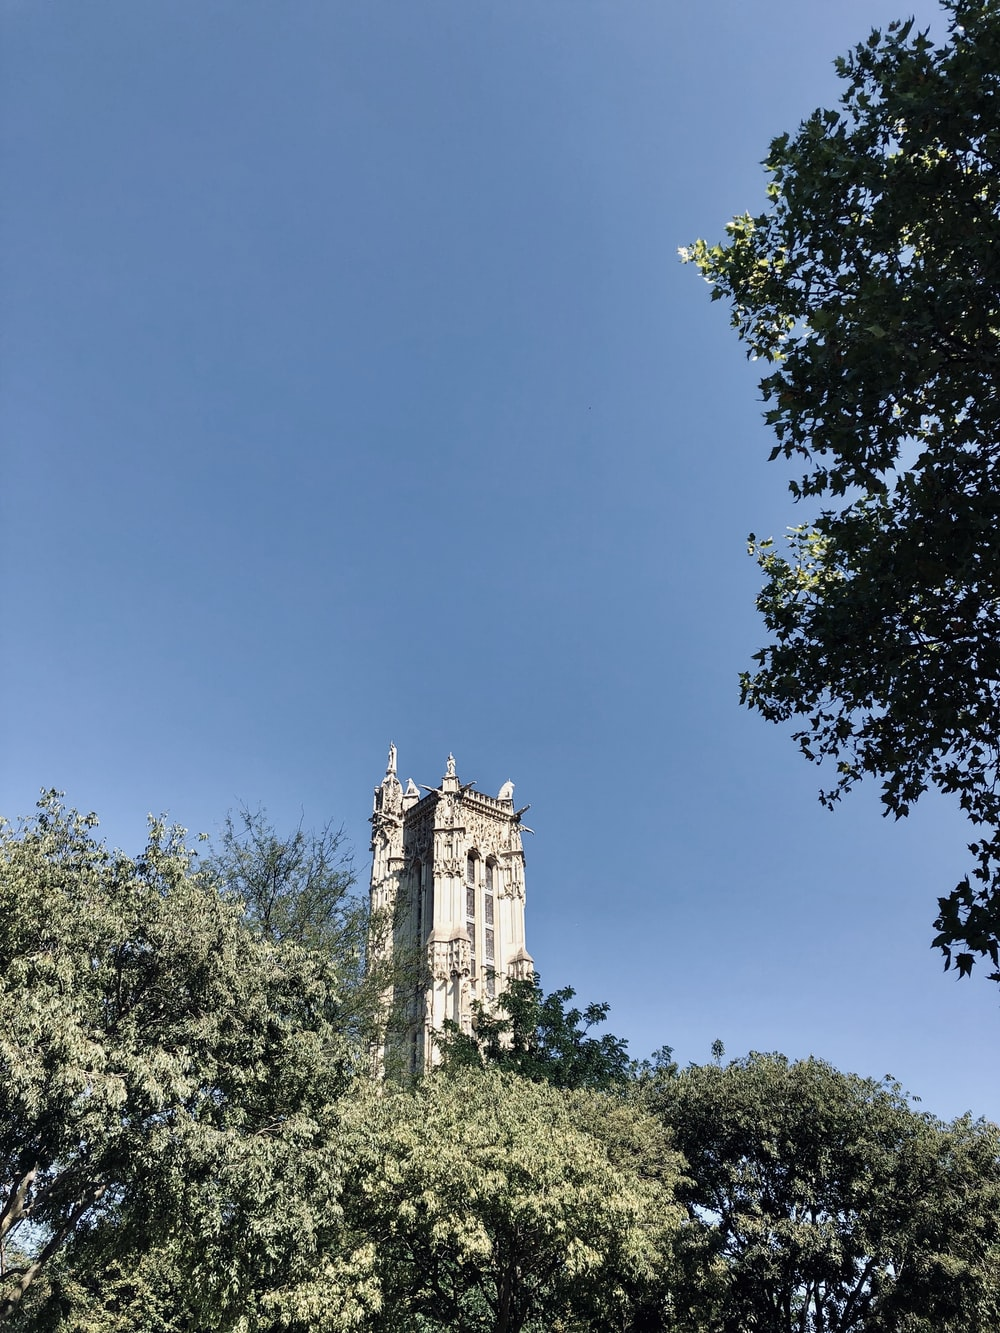 gray concrete tower beside green trees